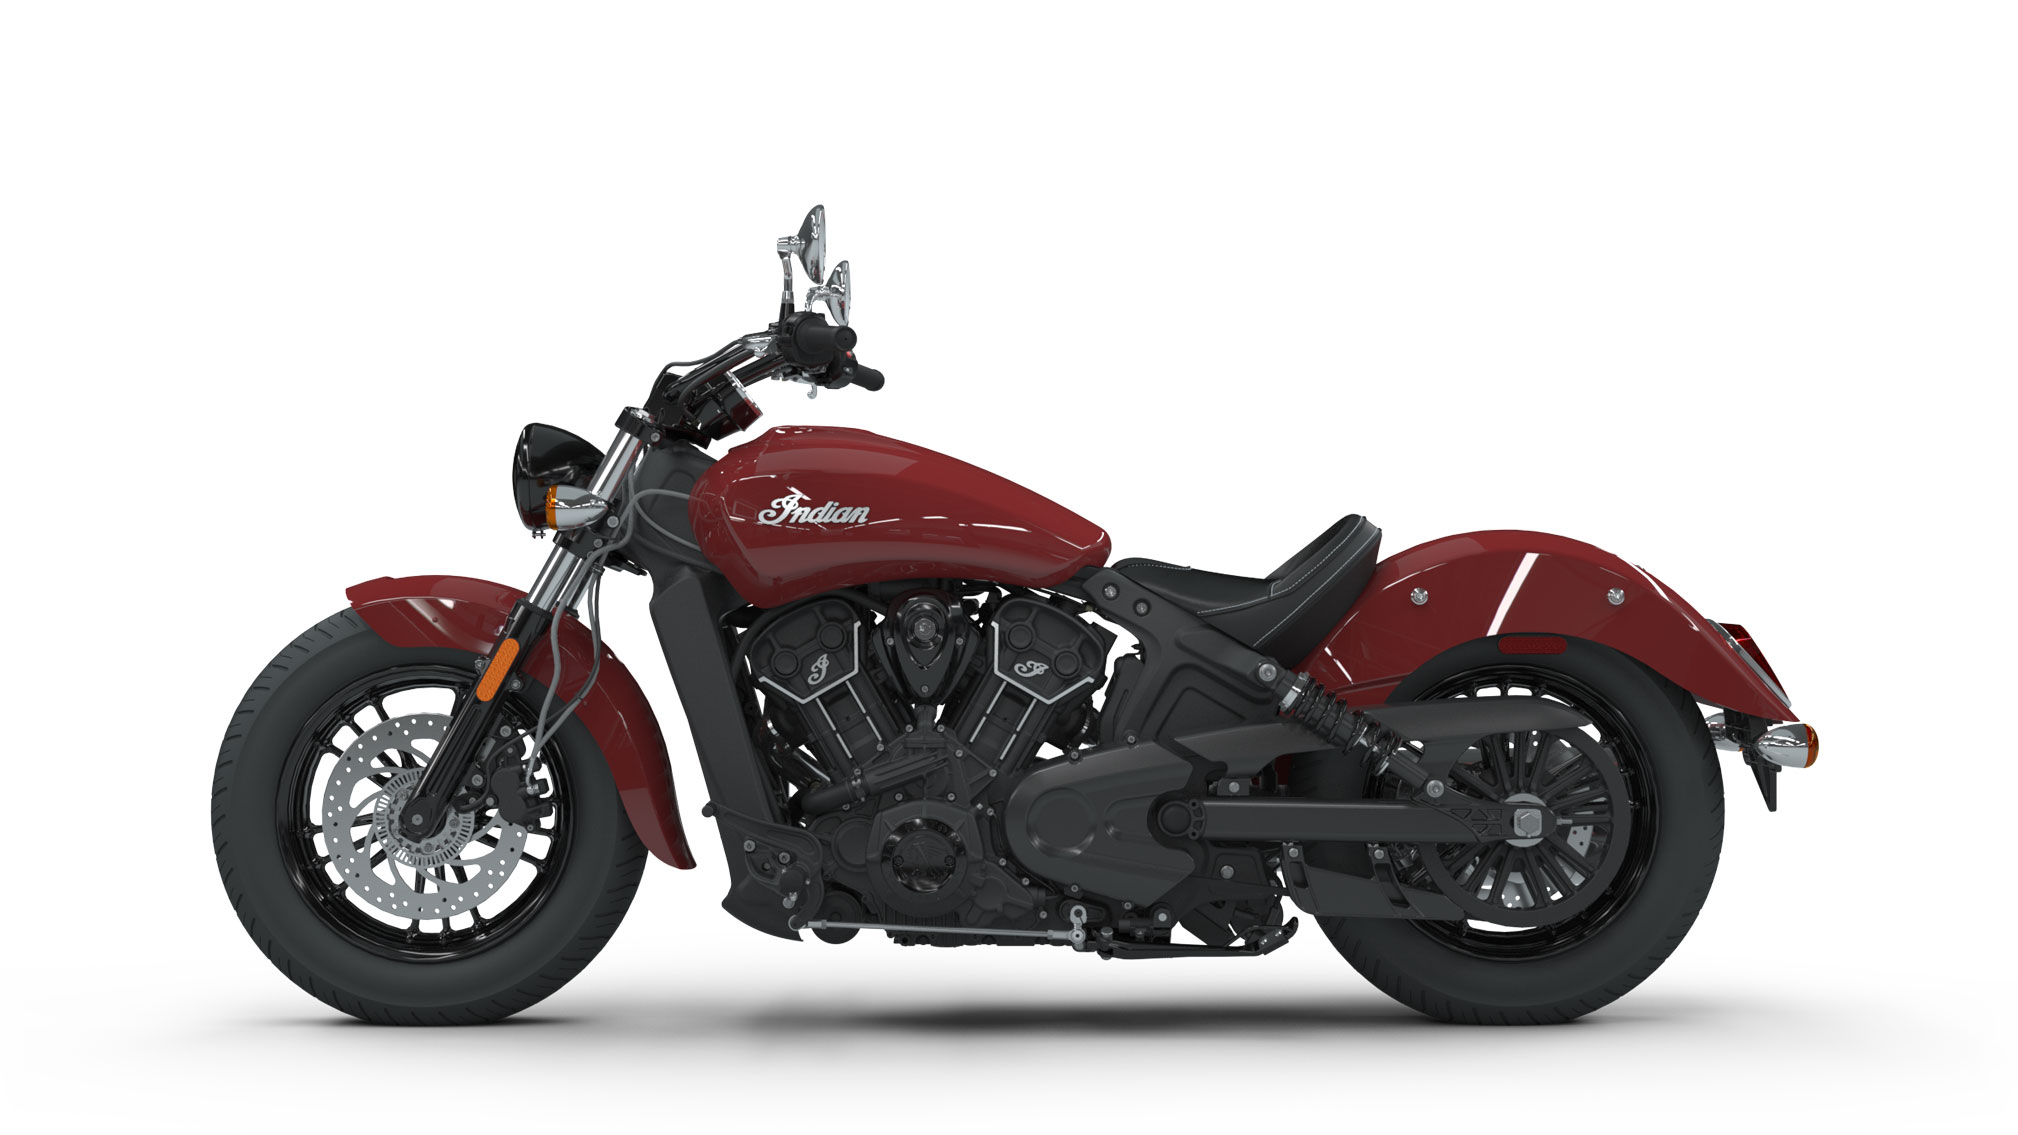 2018 Indian Scout Sixty Review - TotalMotorcycle